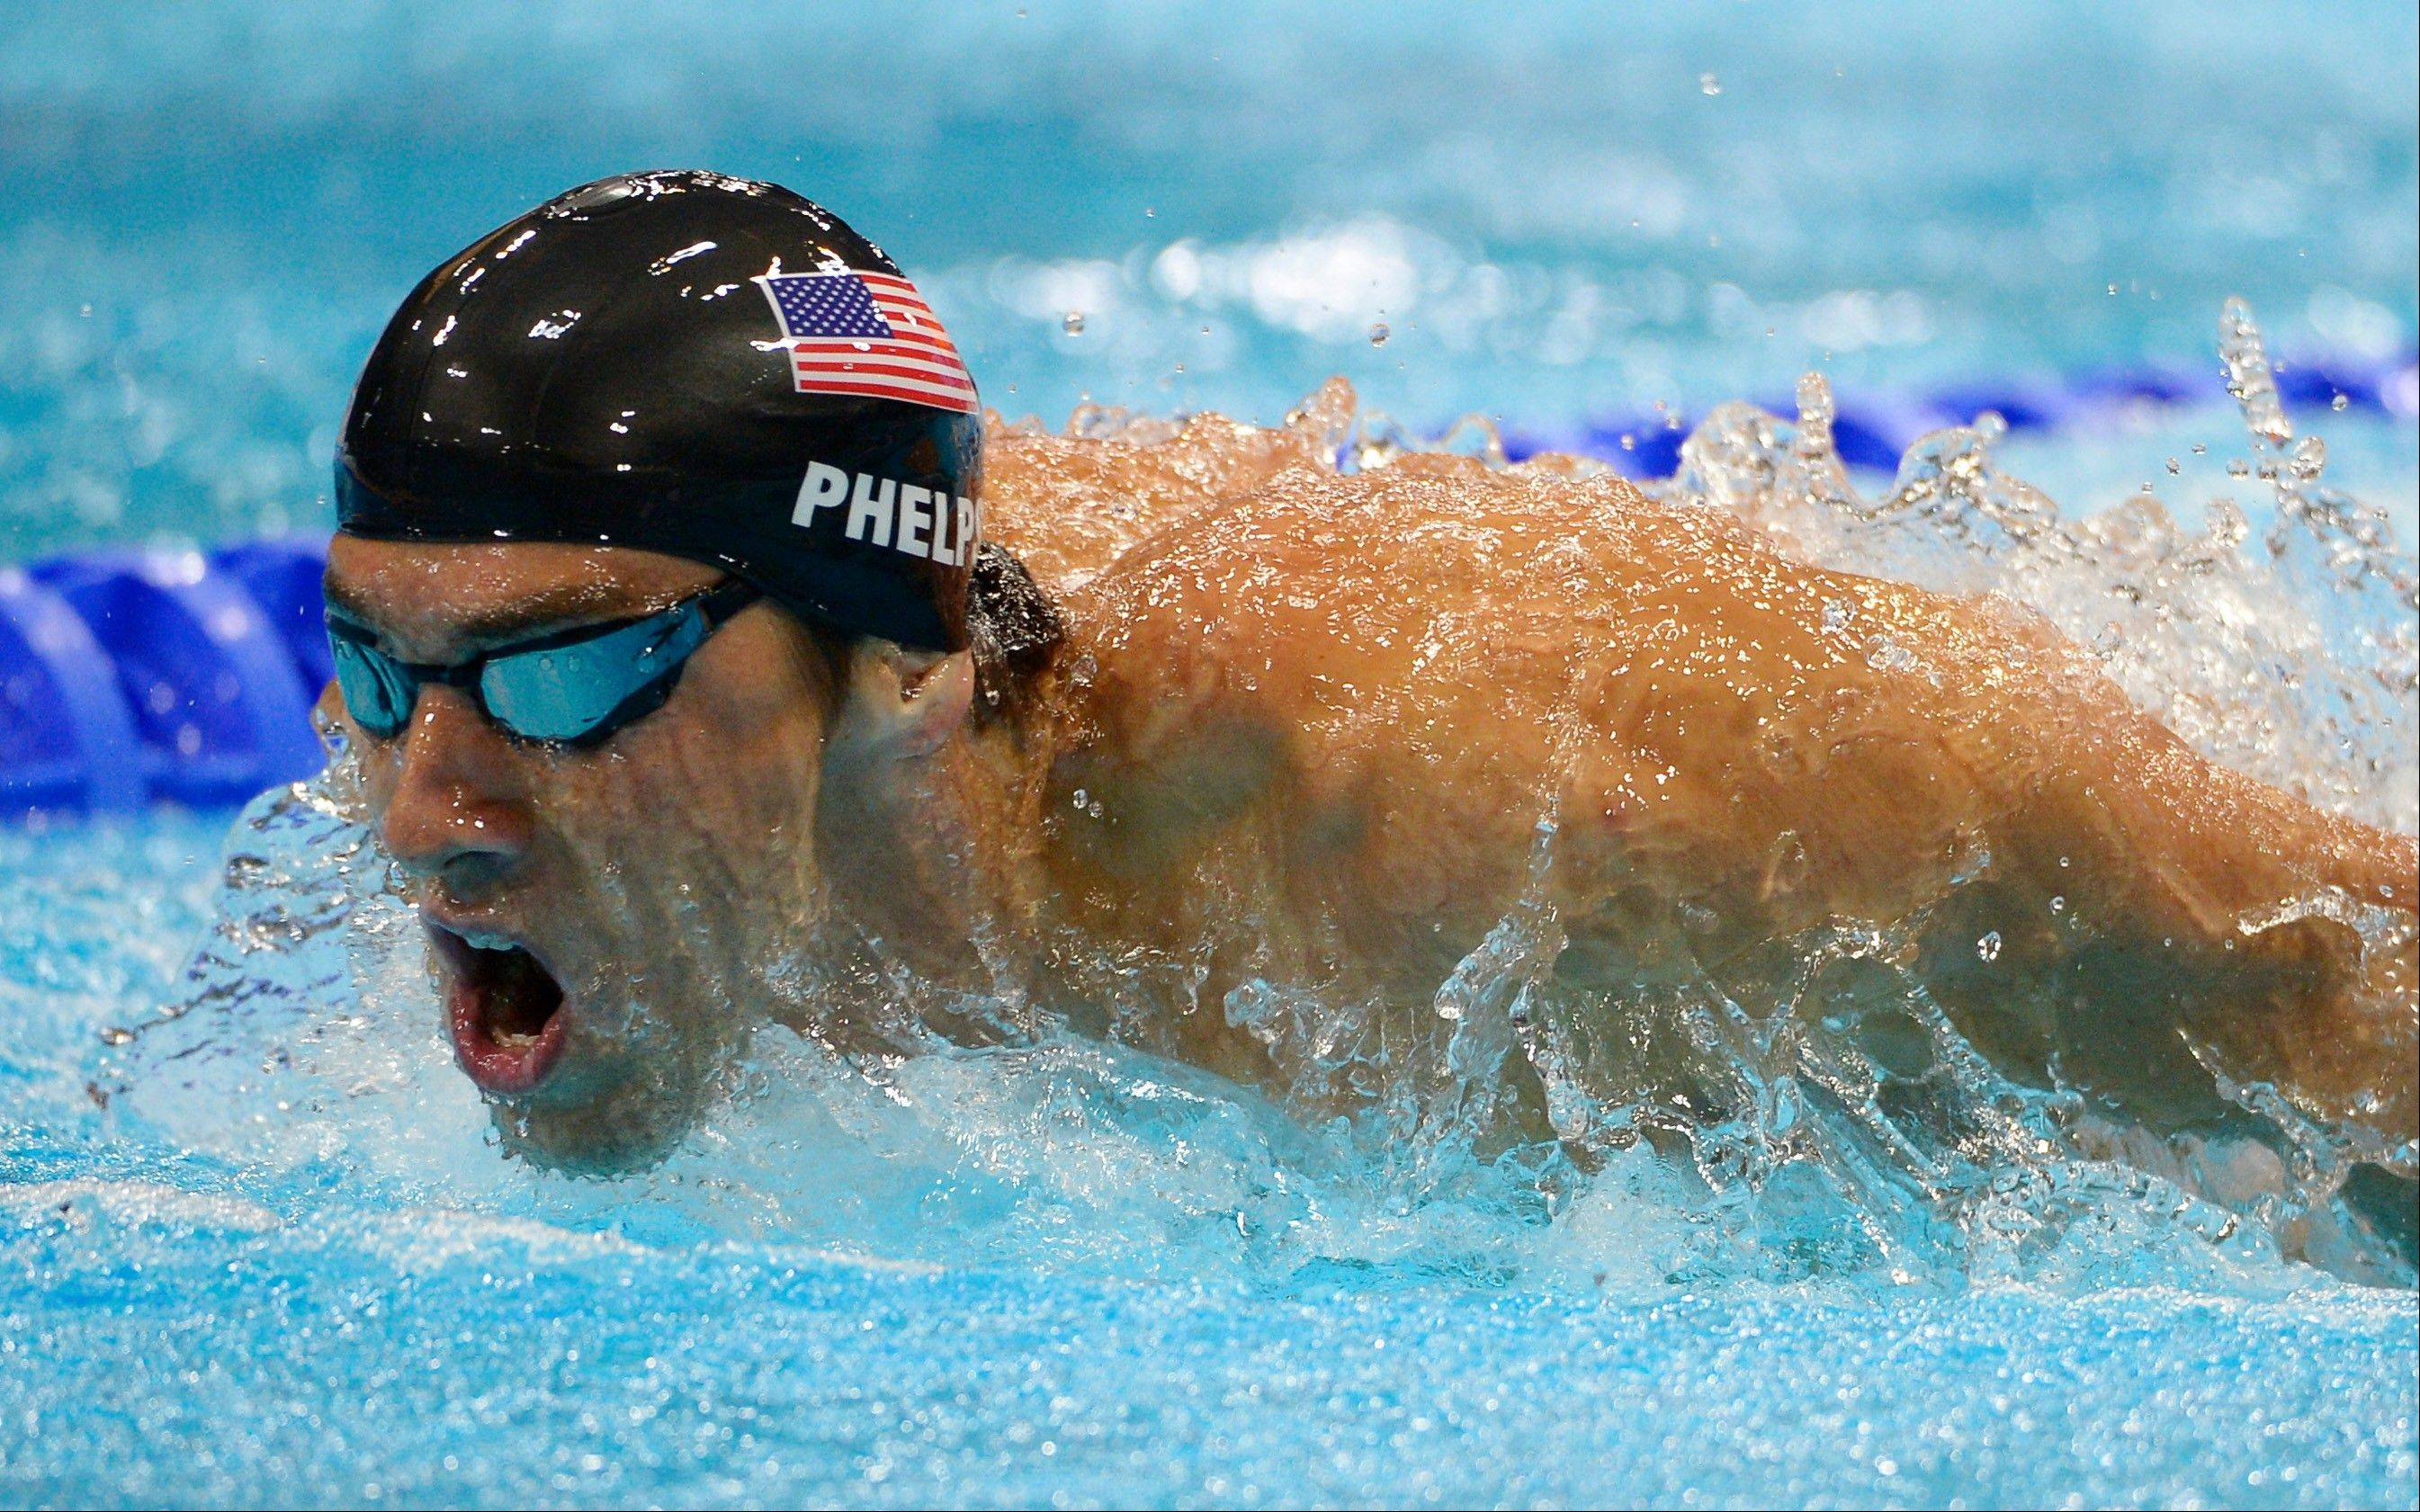 United States� Michael Phelps competes in the men�s 400-meter individual medley swimming final at the Aquatics Centre in the Olympic Park during the 2012 Summer Olympics in London, Saturday, July 28, 2012.